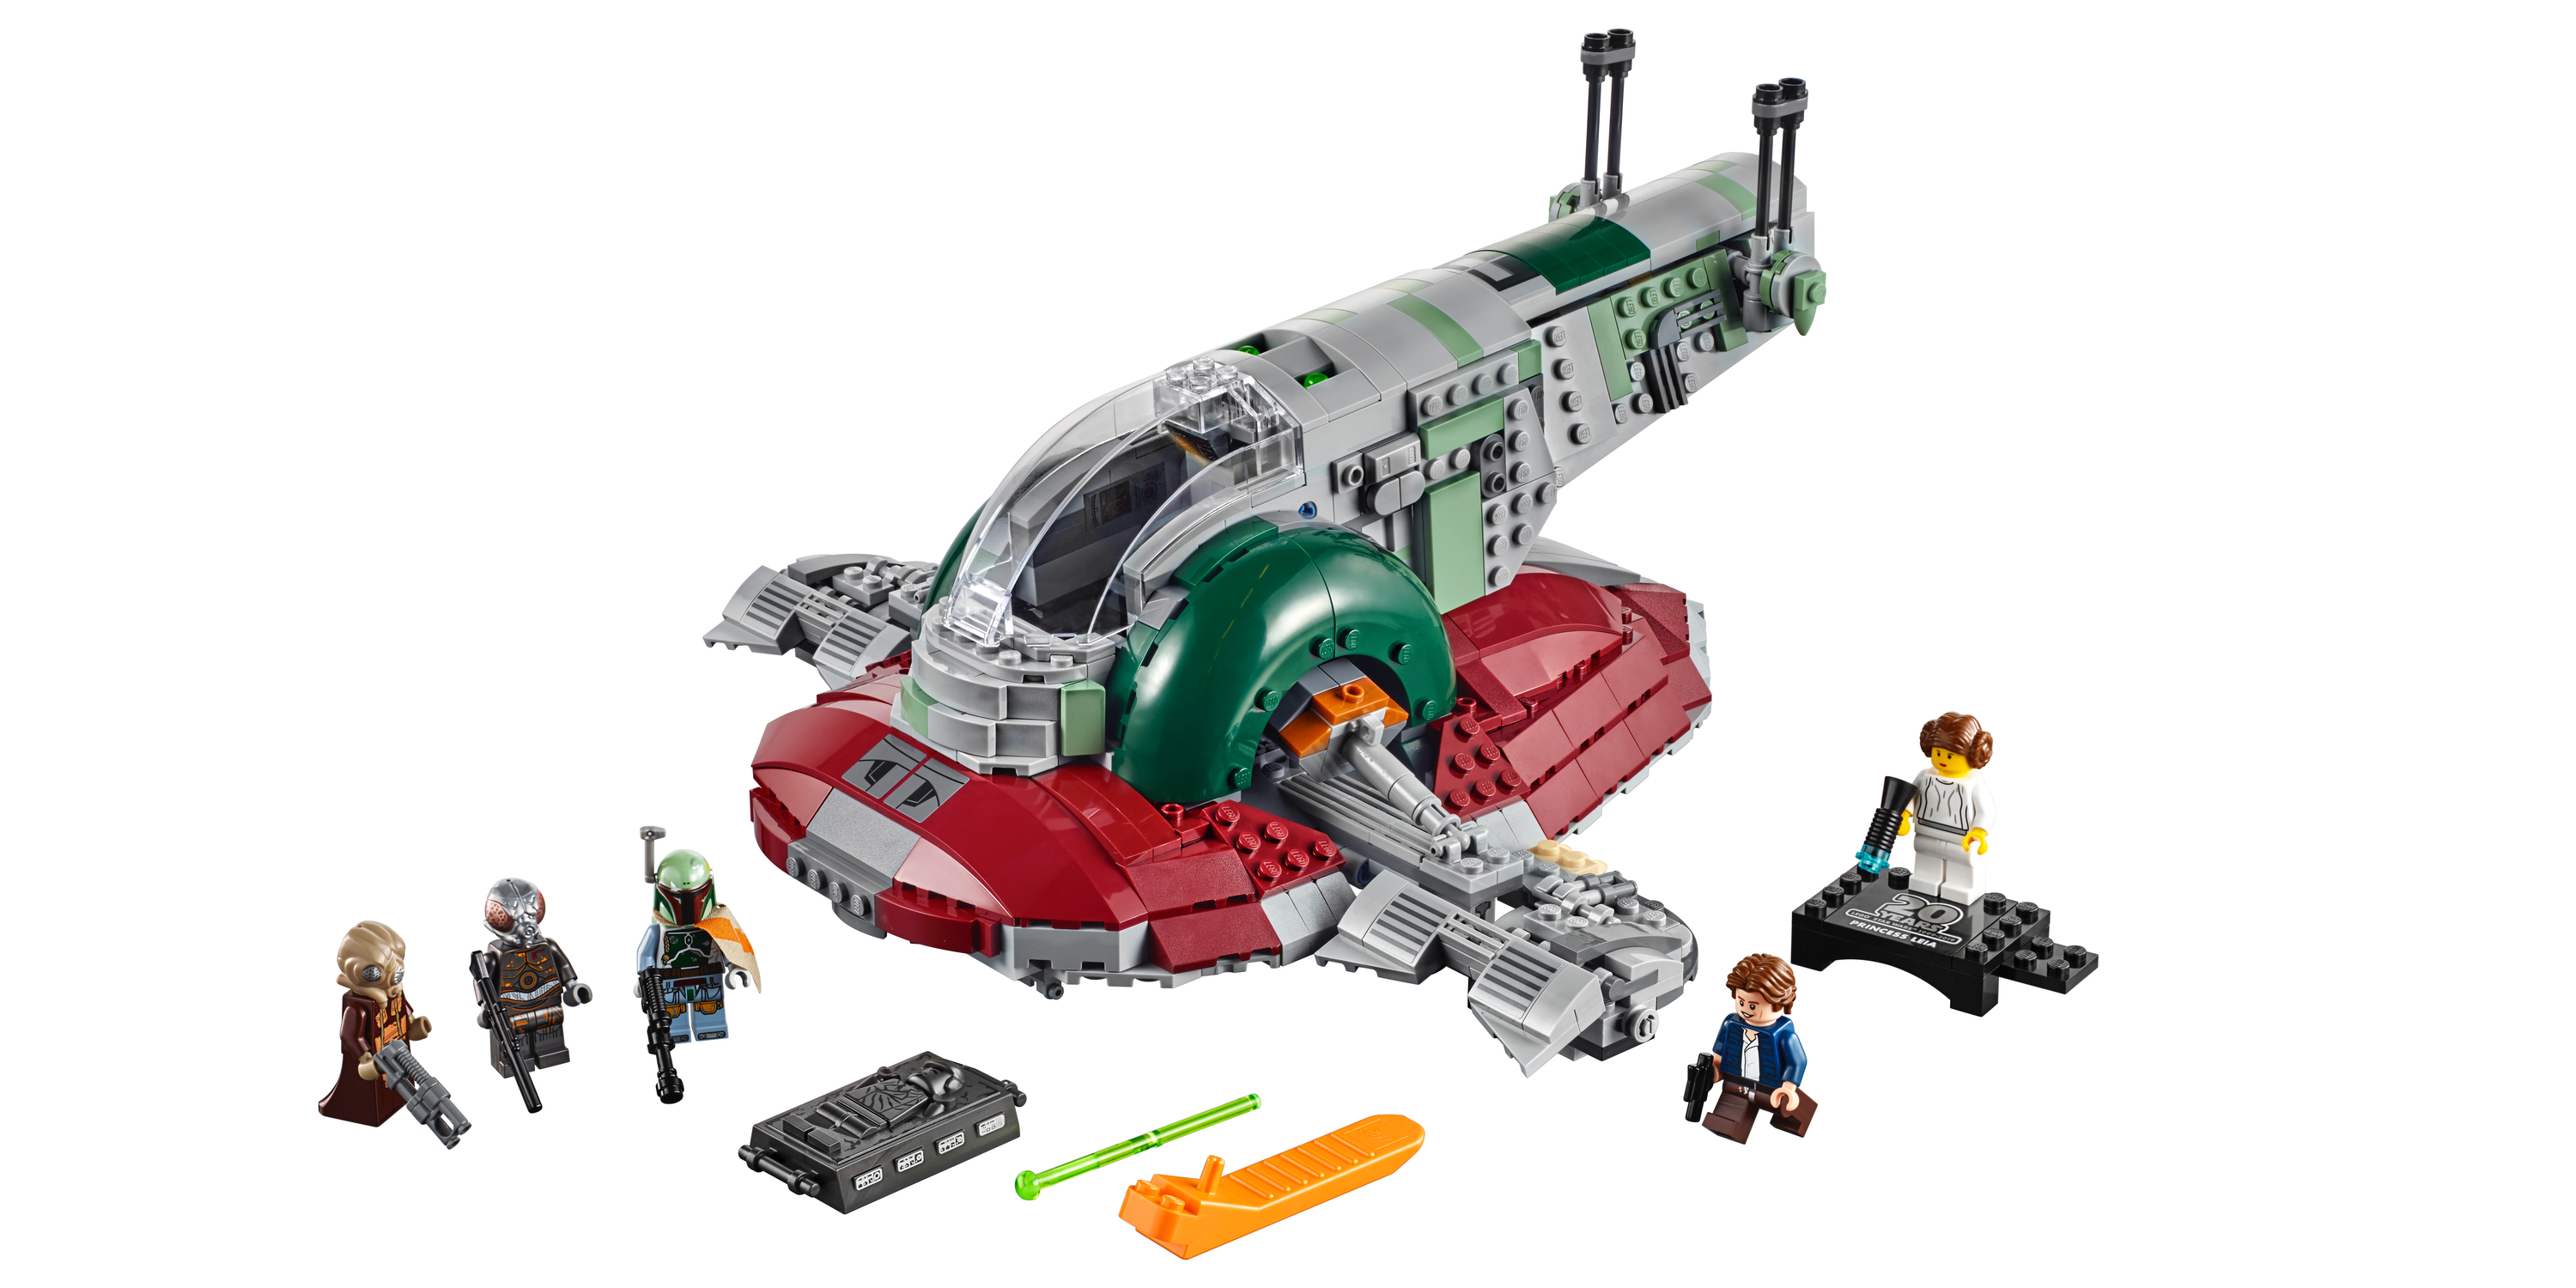 LEGO Star Wars 20th Anniversary Slave 1